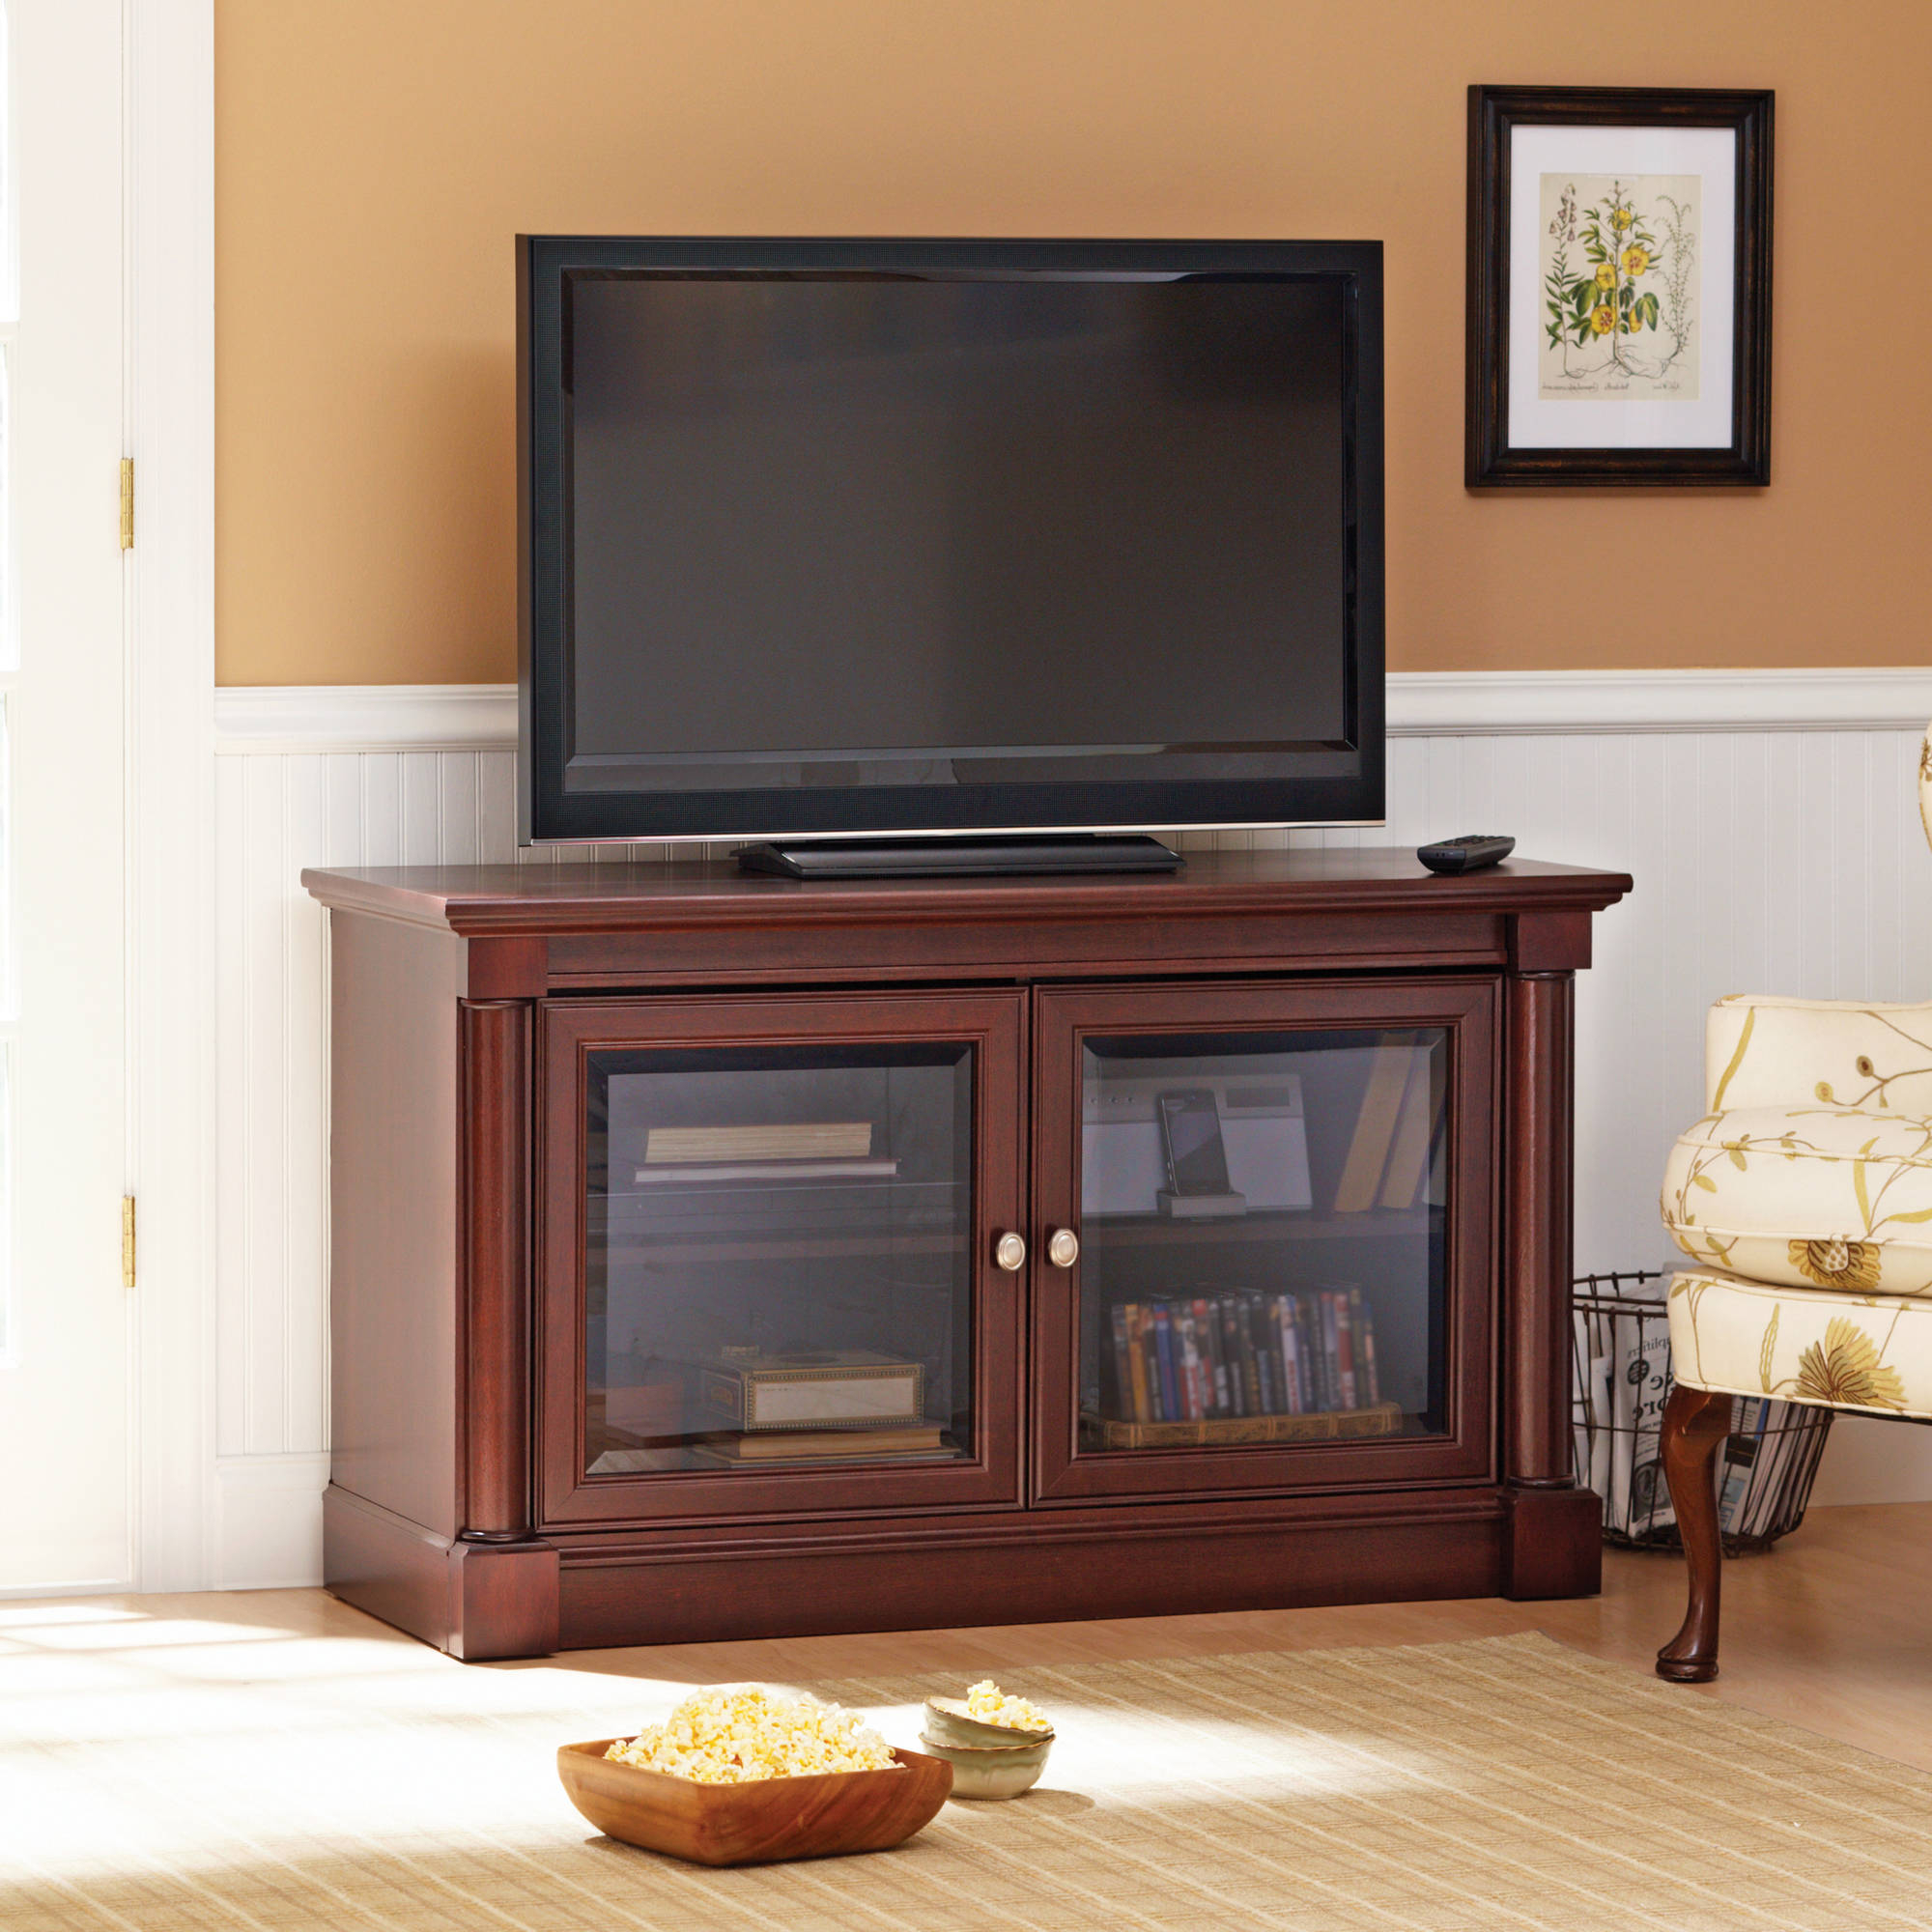 Recent Willow Mountain Cherry Tv Stand With Mount, For Tvs Up To 37 Pertaining To Tv Stands For Tube Tvs (Gallery 7 of 20)